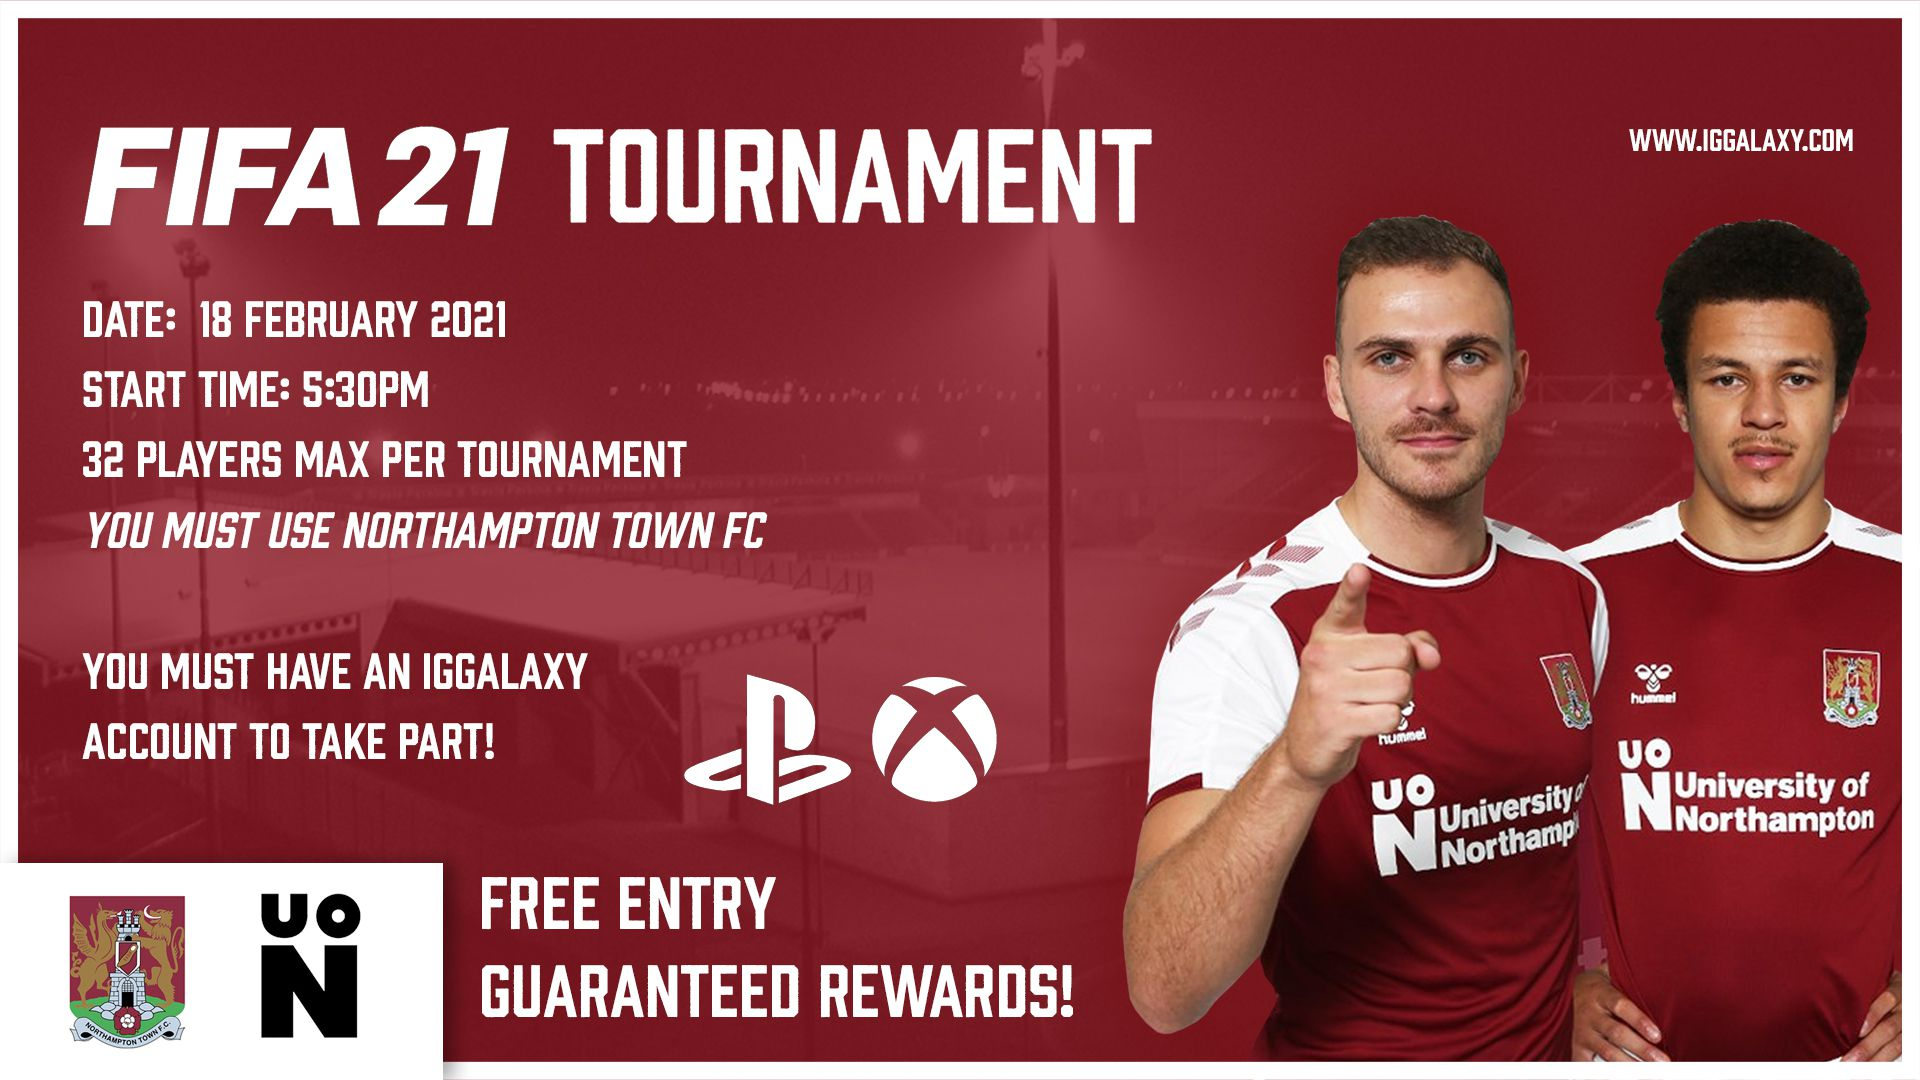 FIFA 21 Northampton F.C. Cup hosted by IGGalaxy!